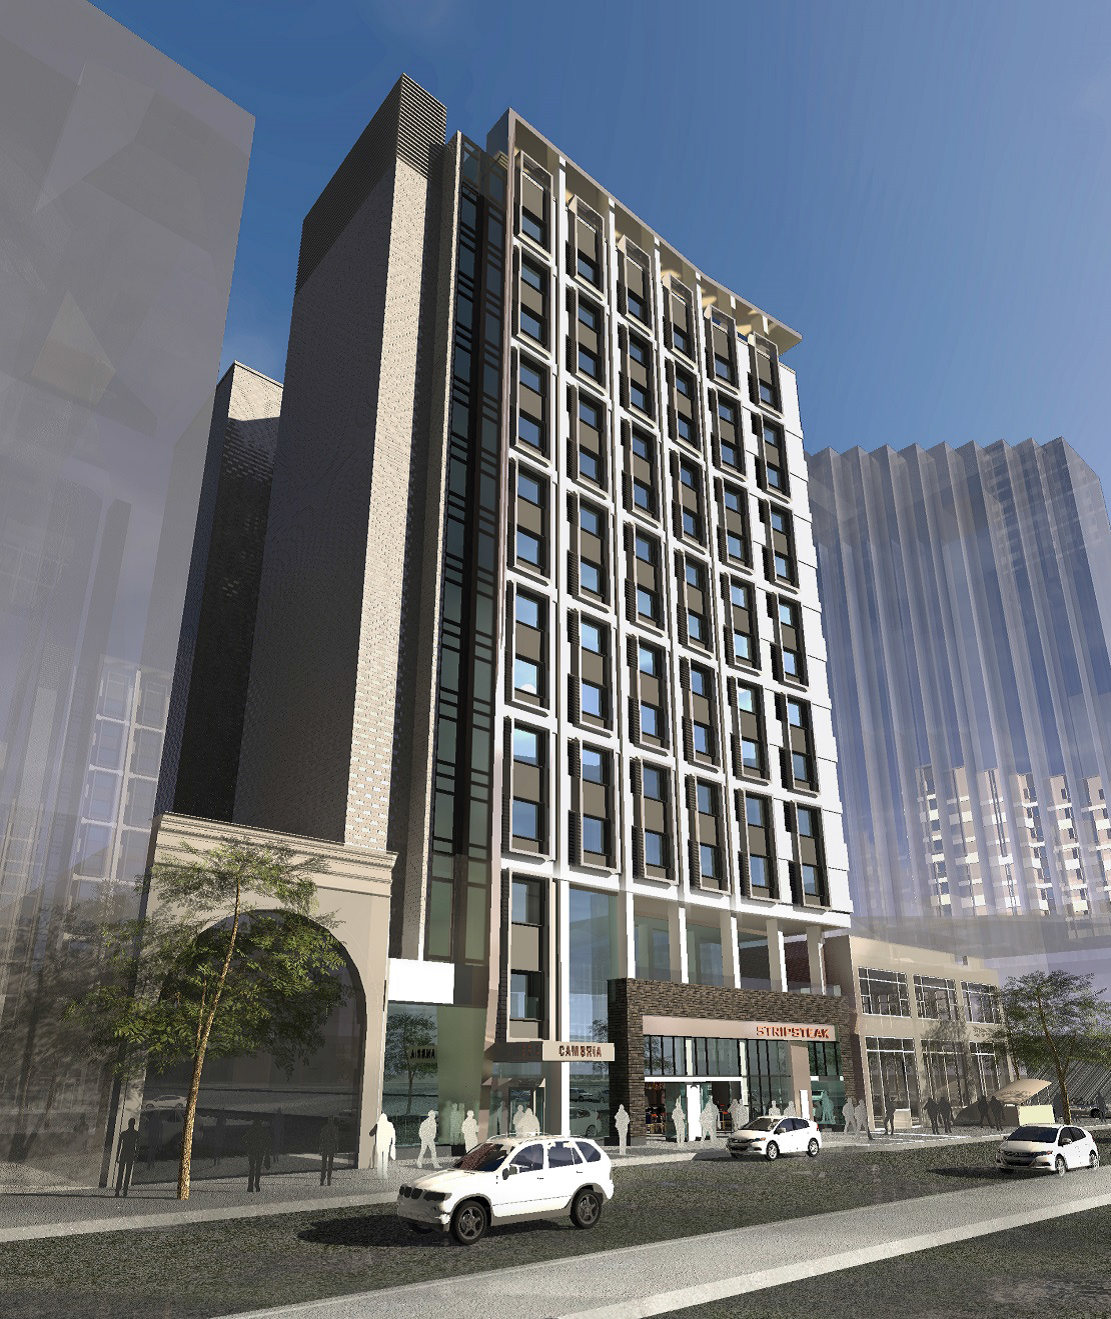 Cambria Hotel Rendering Revealed For Broad And Locust